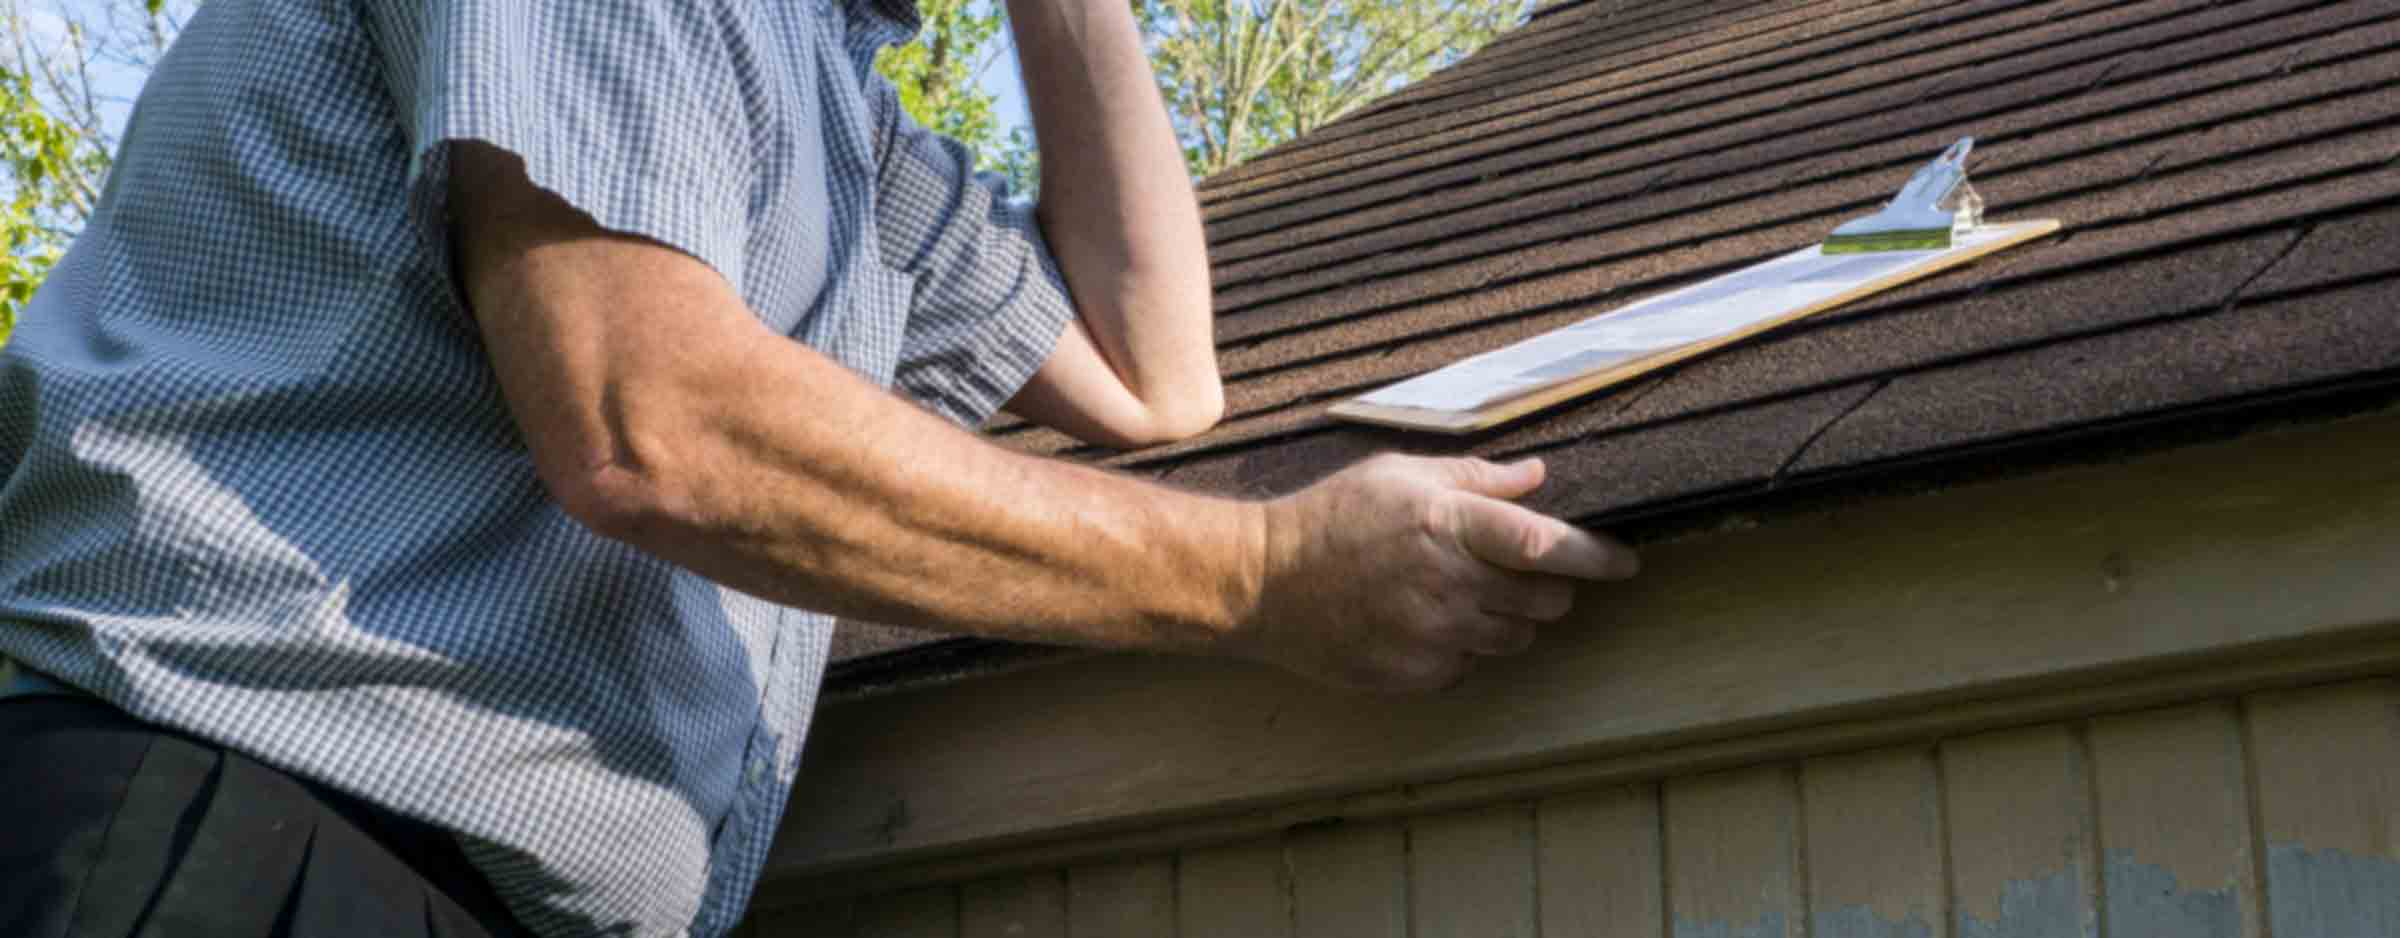 inspect your roof safely